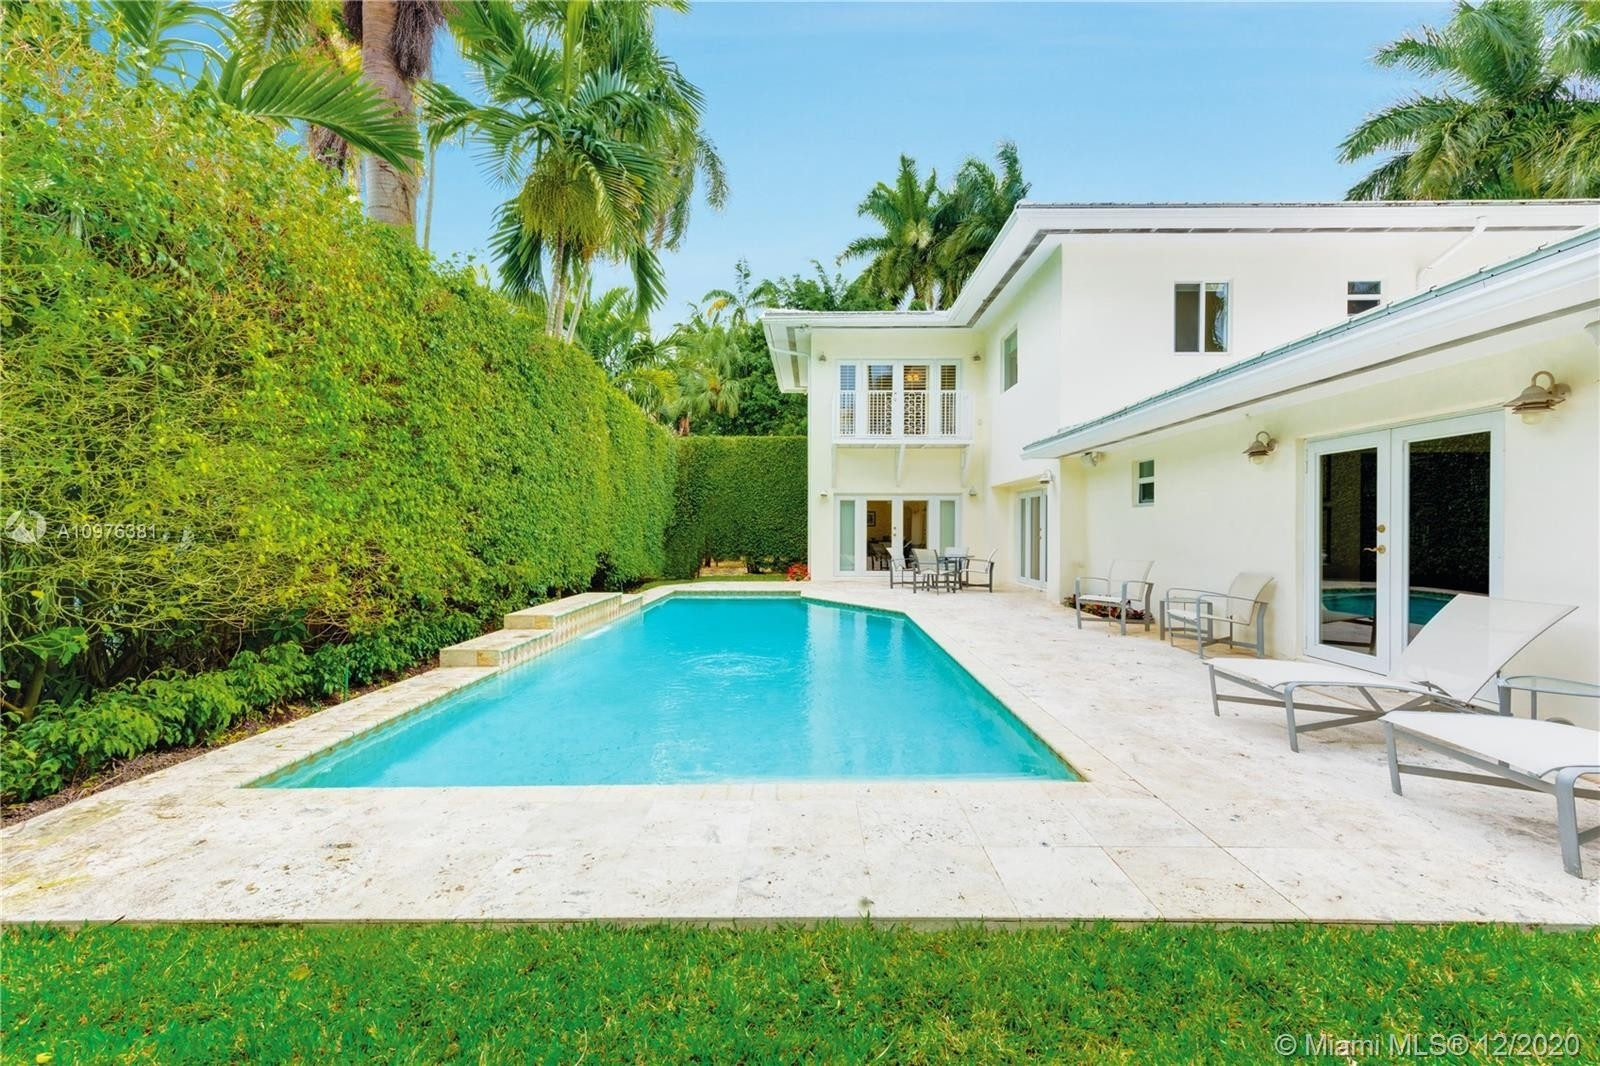 Property at Bayshore, Miami Beach, FL 33140